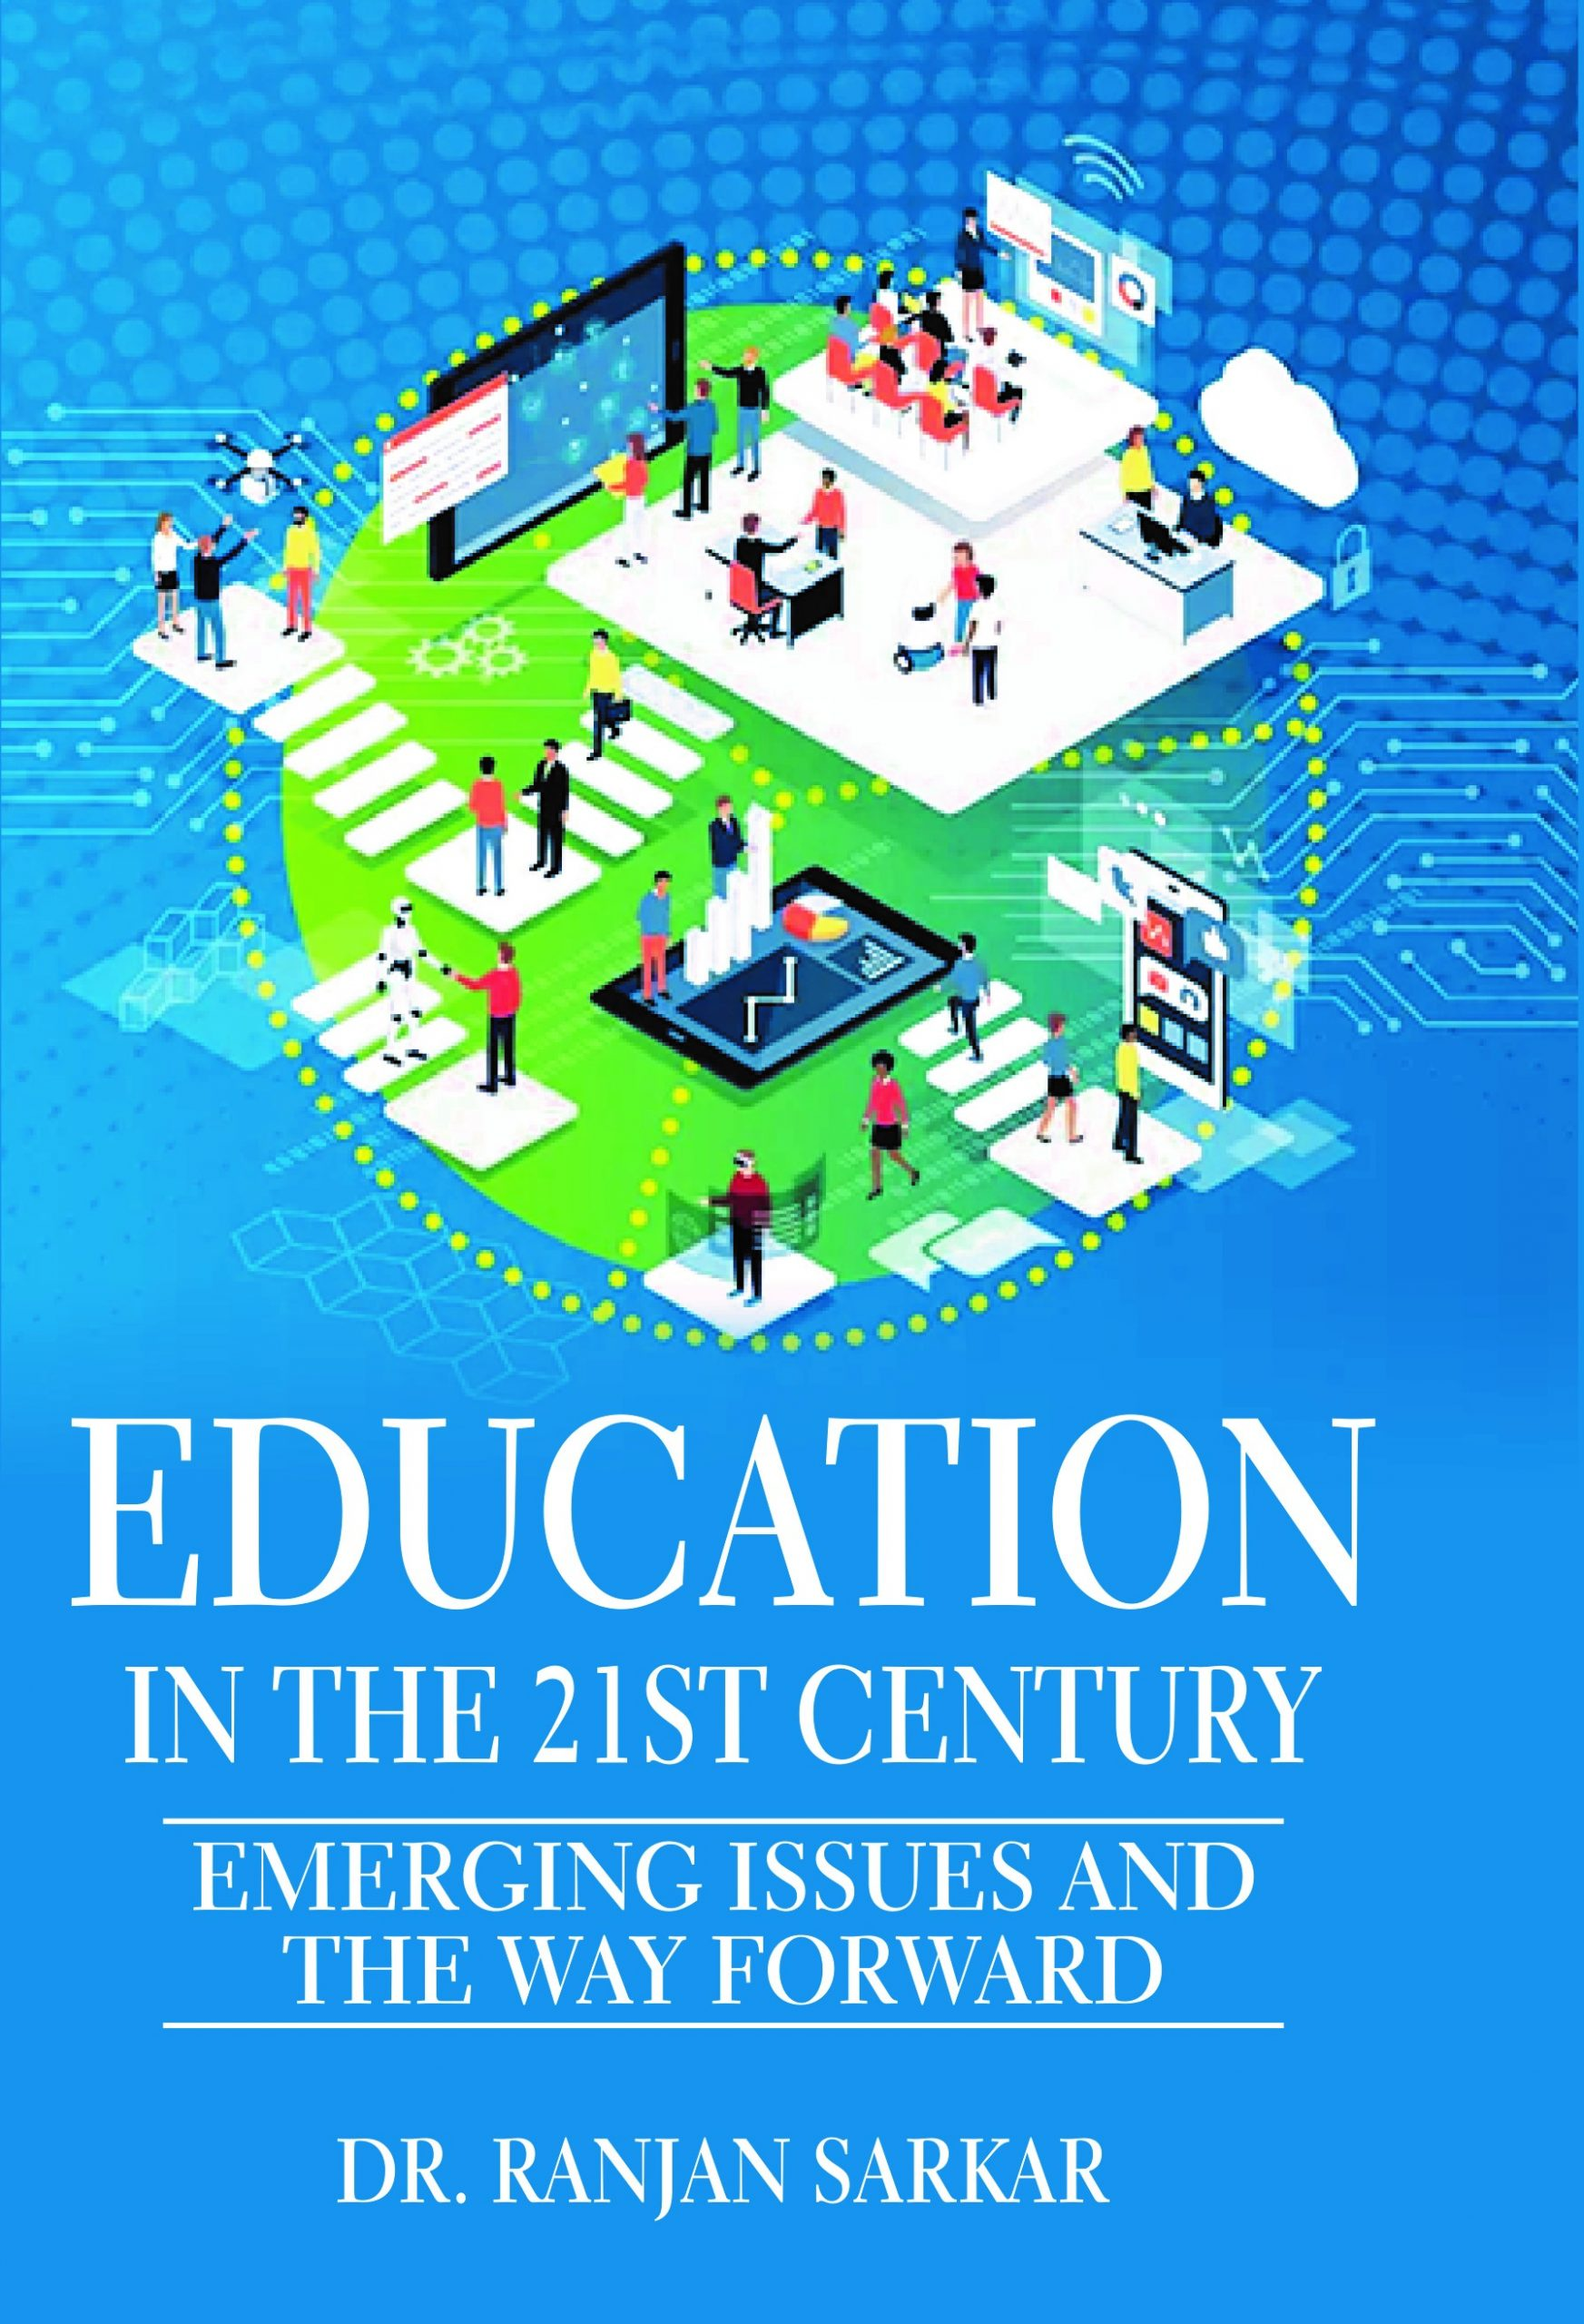 EDUCATION IN THE 21ST CENTURY EMERGING ISSUES AND THE WAY FORWARD